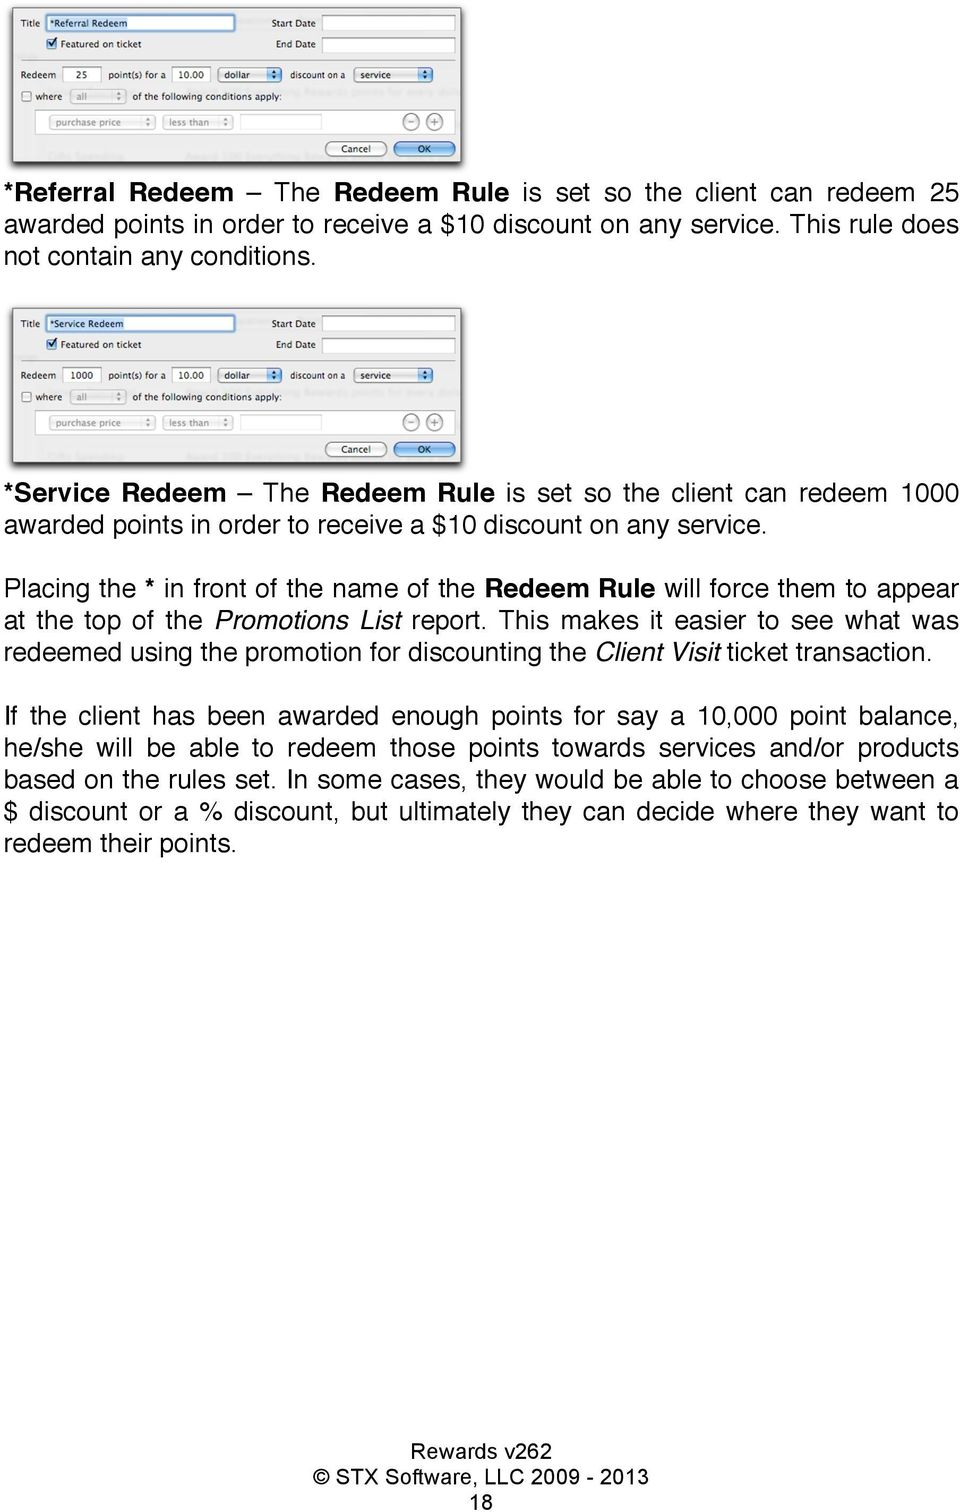 Placing the * in front of the name of the Redeem Rule will force them to appear at the top of the Promotions List report.